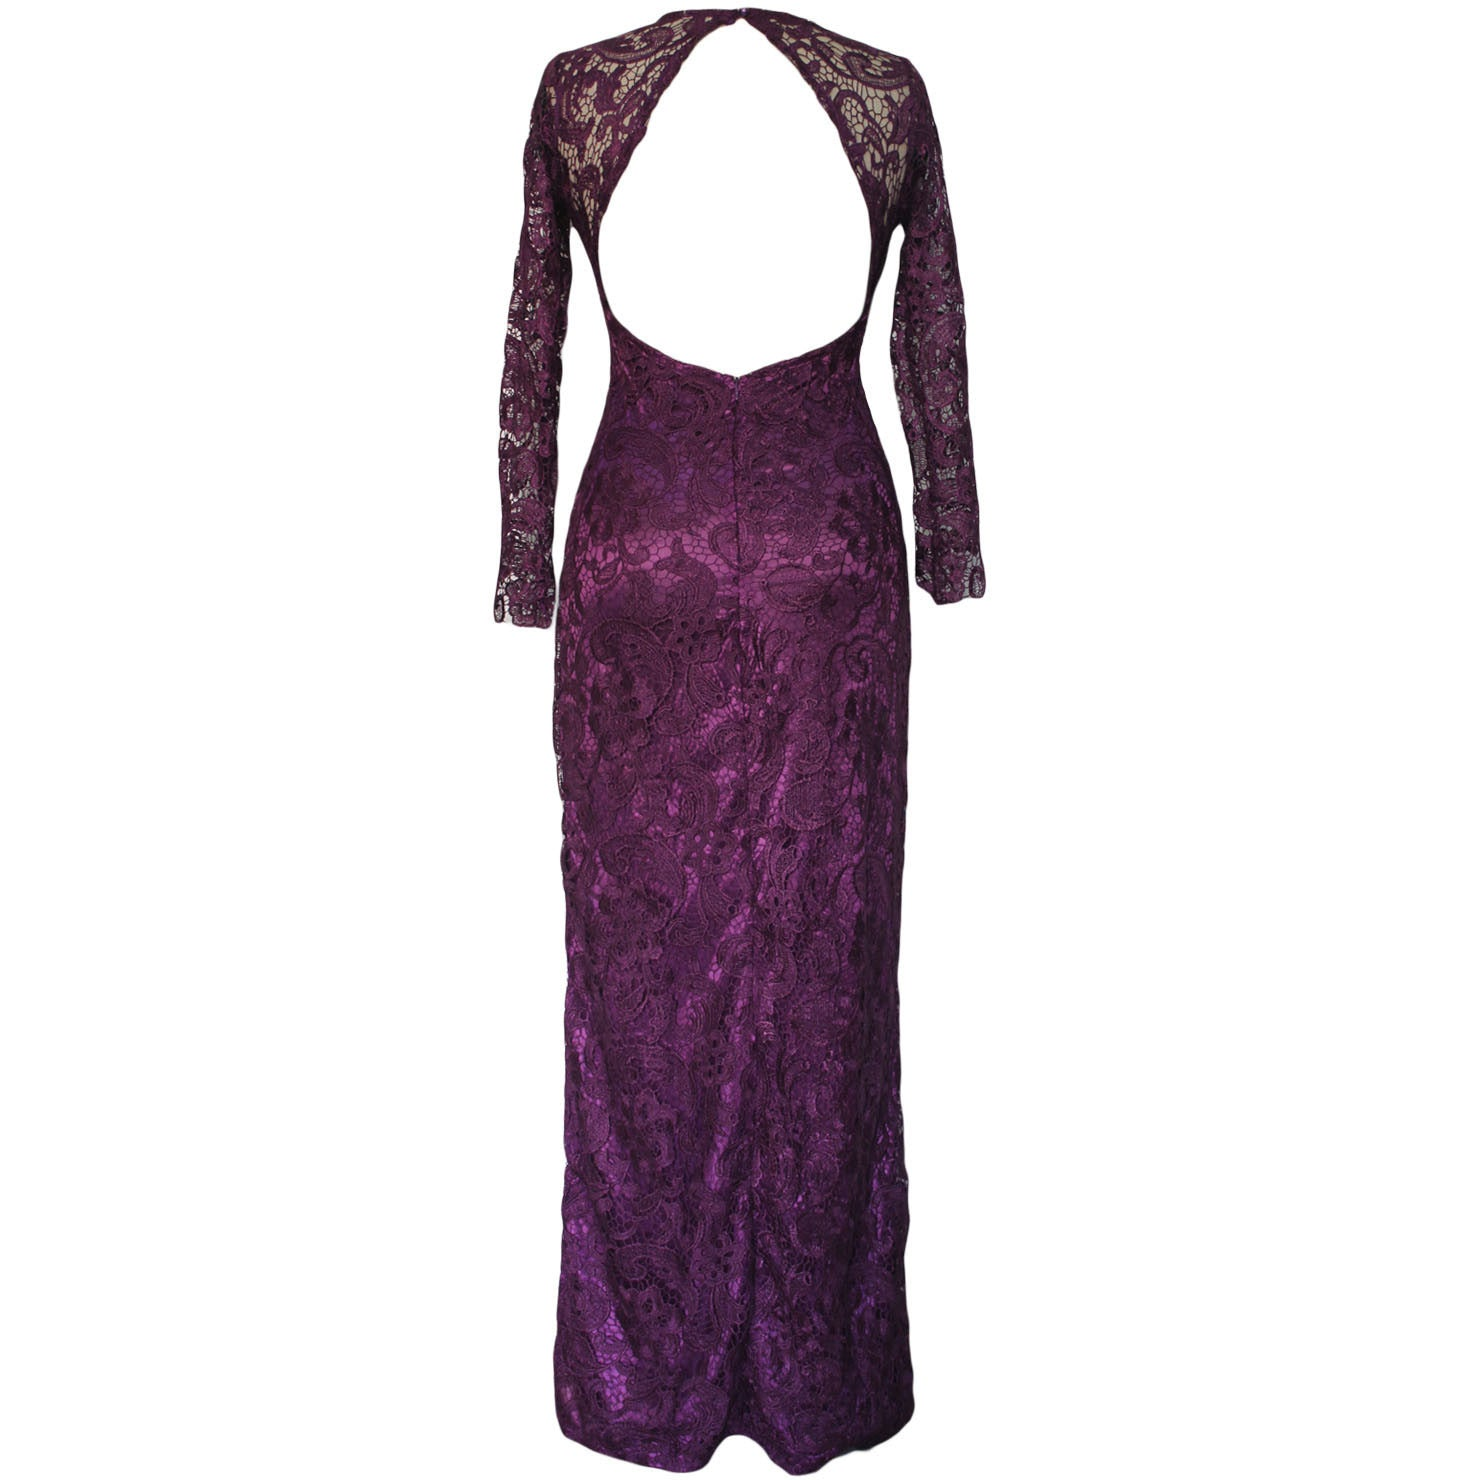 Lace Overlay Purple Maxi Dress LAVELIQ - LAVELIQ - 3